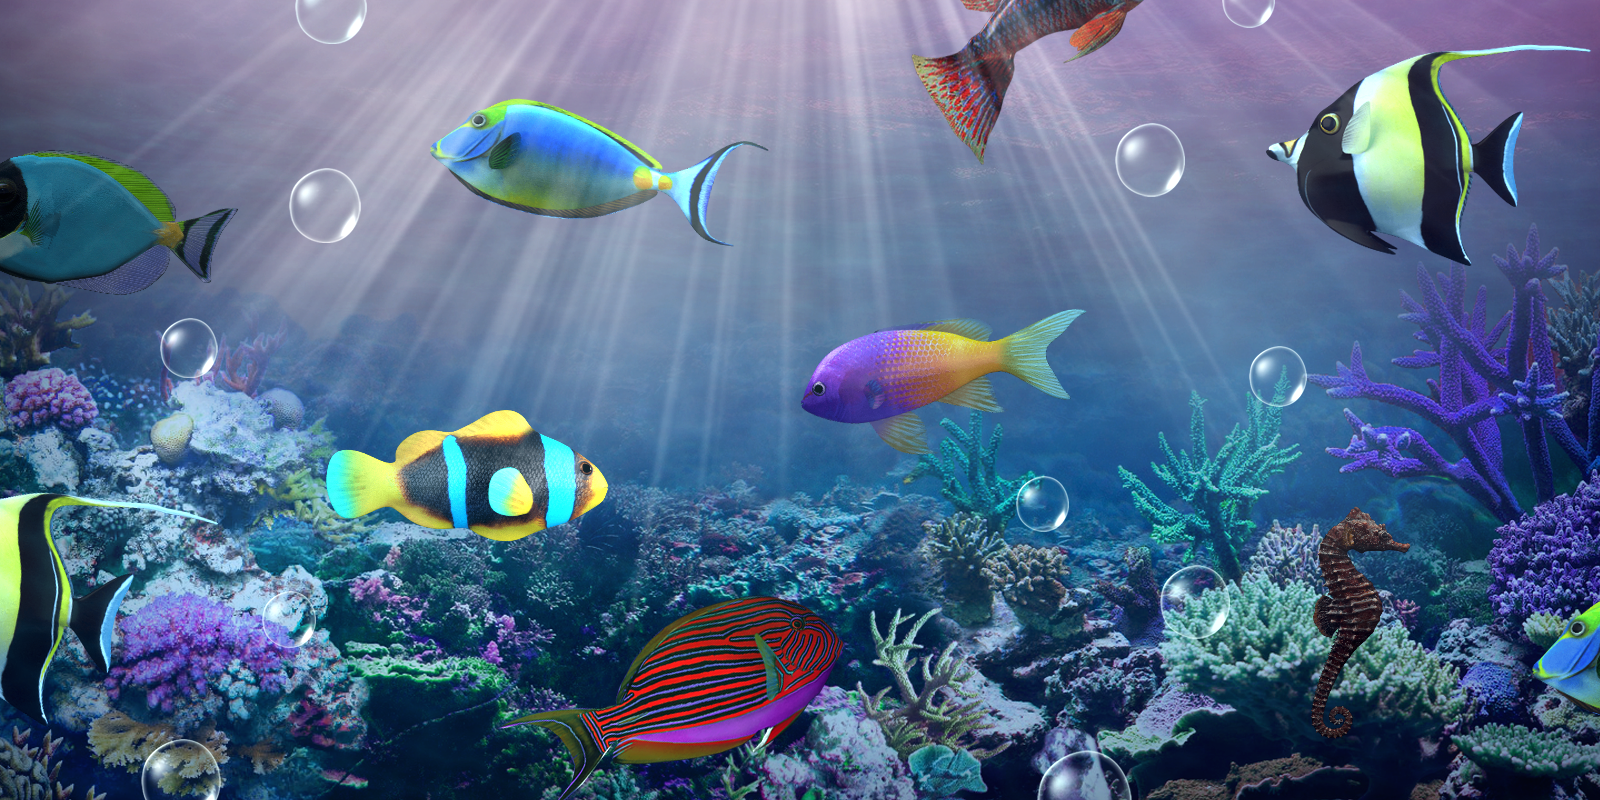 Fish aquarium live wallpaper - Aquarium Live Wallpaper Screenshot